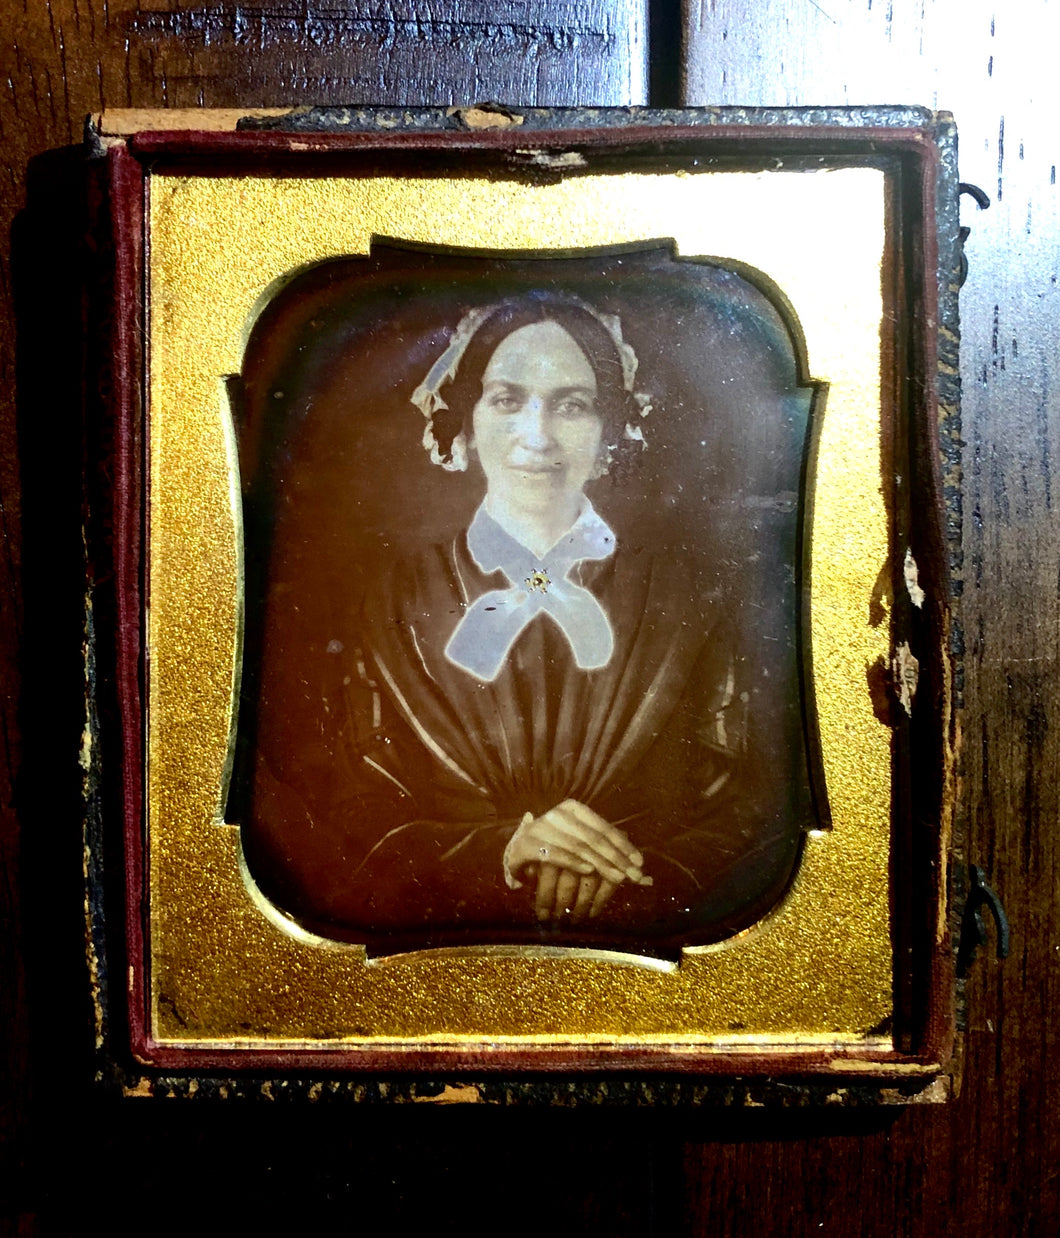 1840s Daguerreotype Smiling Woman, Jewelry & Interesting Seals